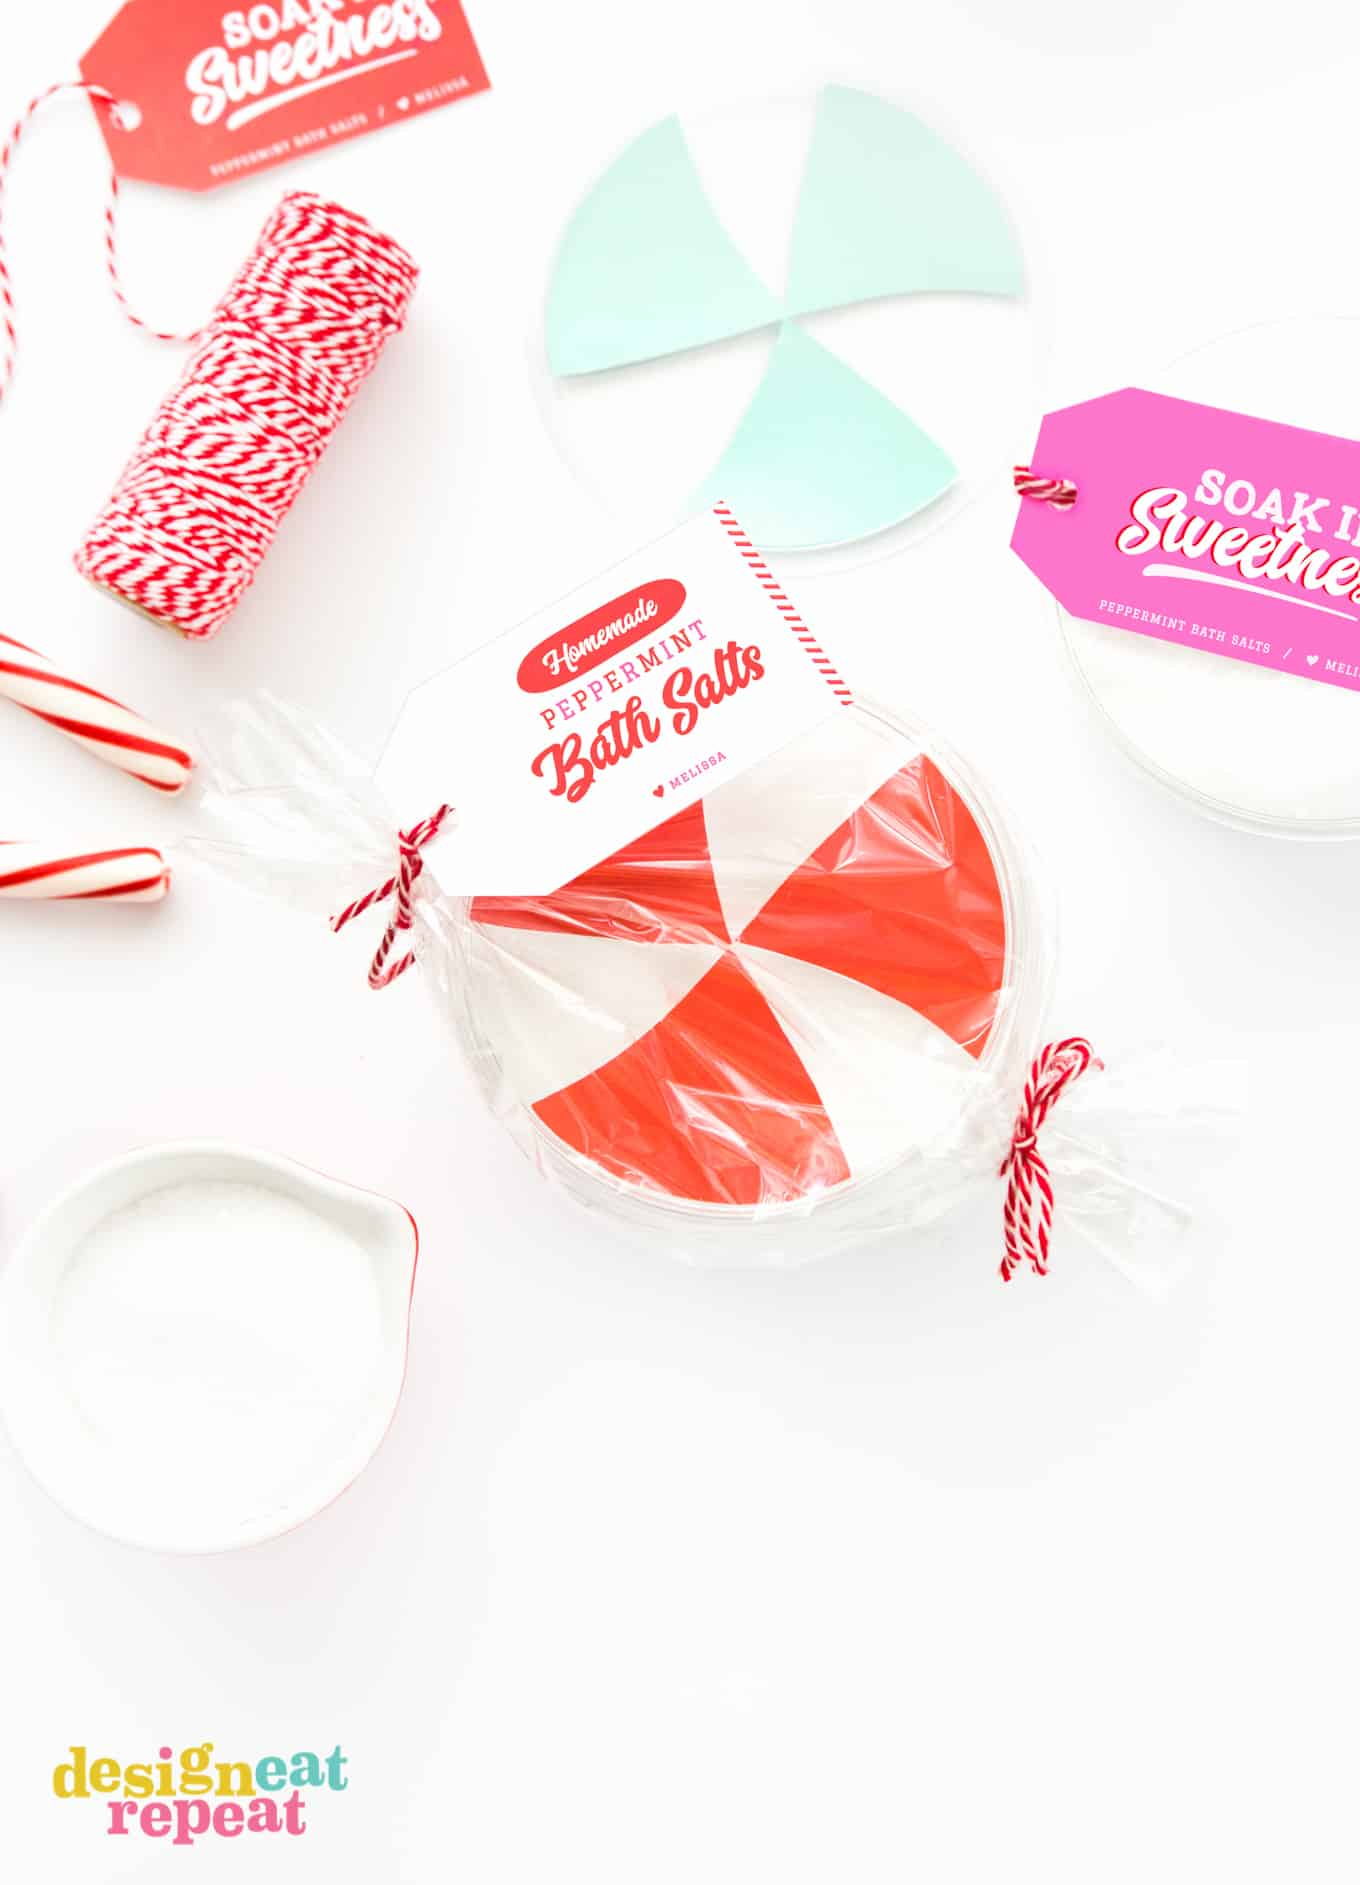 Learn how to mix up a batch of DIY Peppermint Bath Salts and pair it with these free printable gift tags for homemade holiday gifts your friends & family will love!